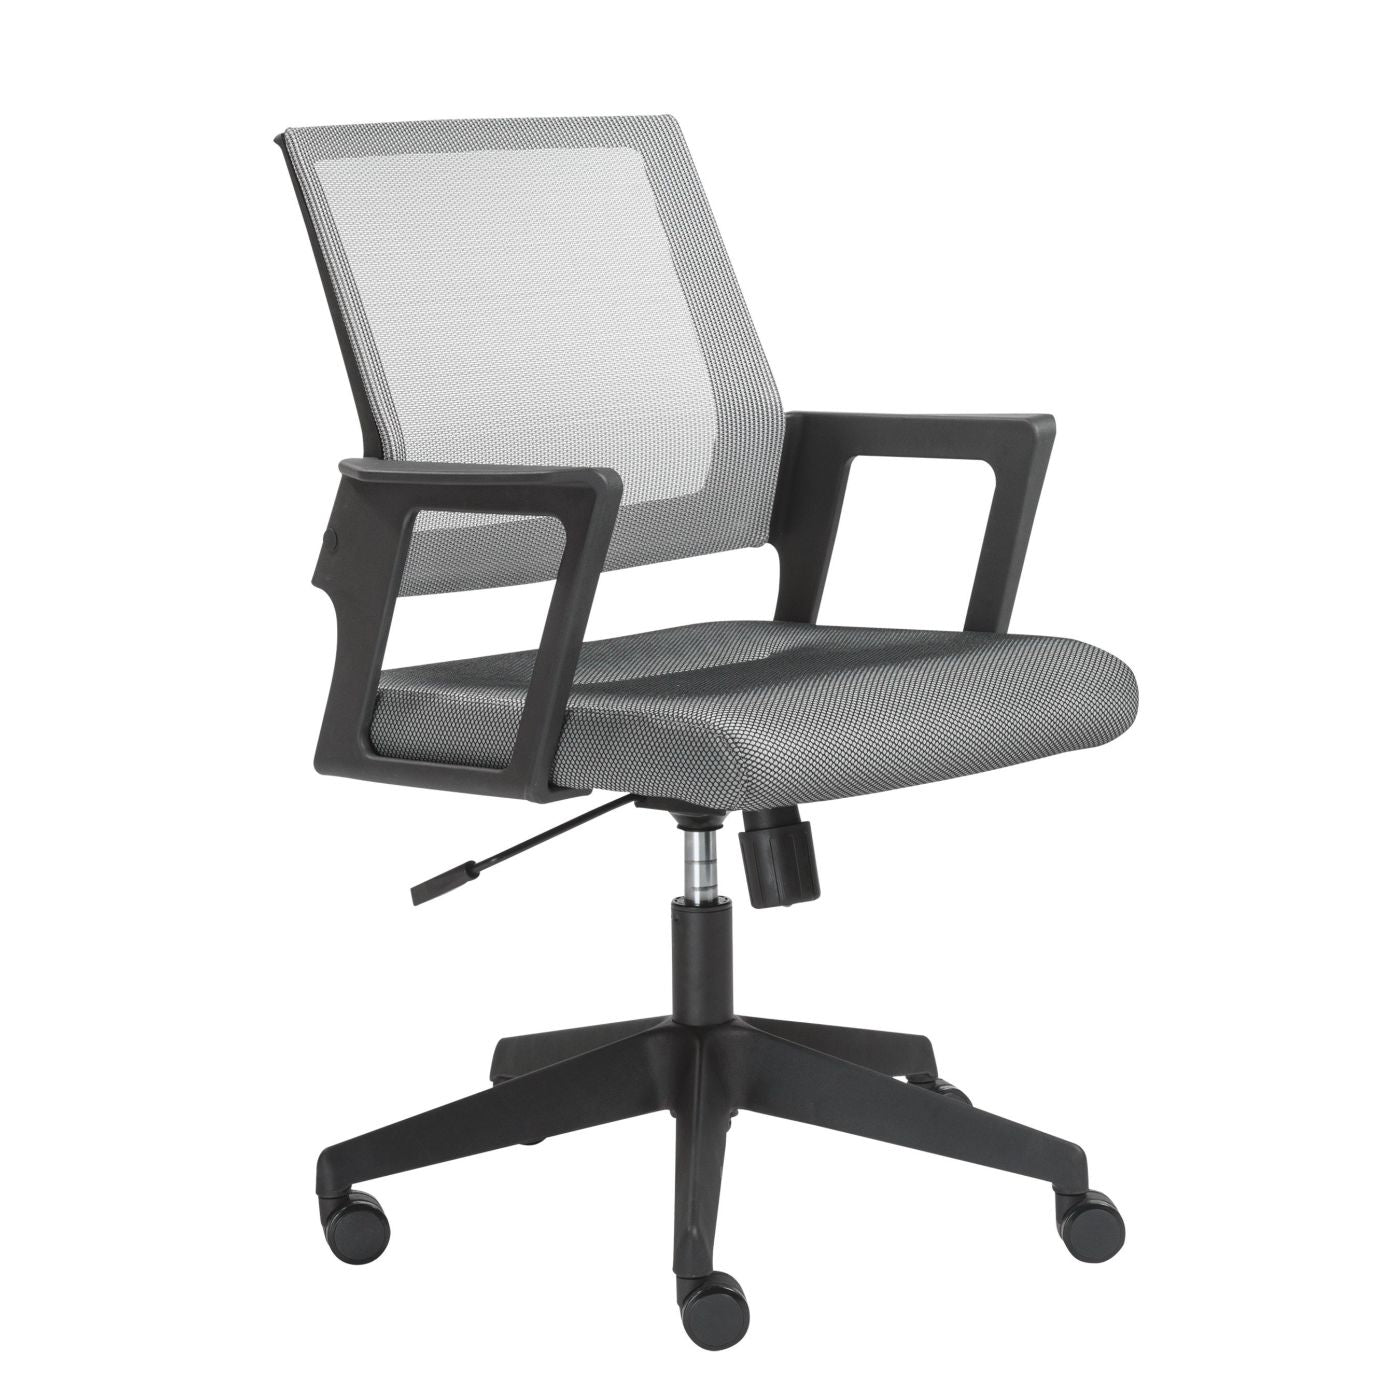 Buy Euro Style Euro 29723 Maska Office Chair In Gray Mesh And Black At Contemporary Furniture Warehouse